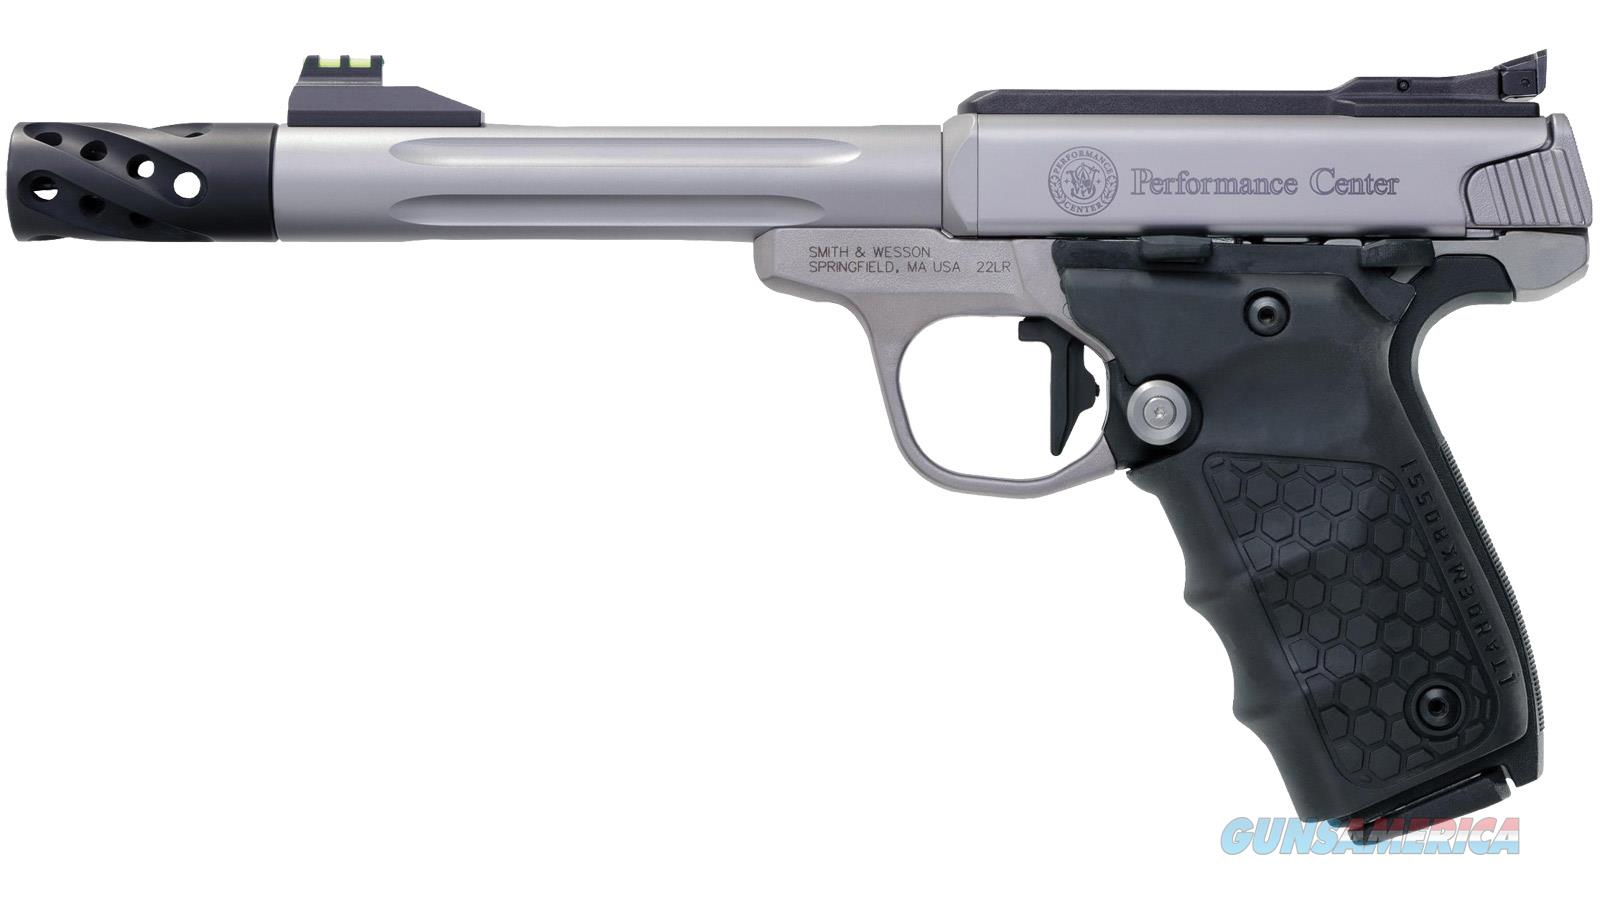 Smith & Wesson Sw22 Victory Target 22Lr 6 Fluted 12078  Guns > Pistols > S Misc Pistols